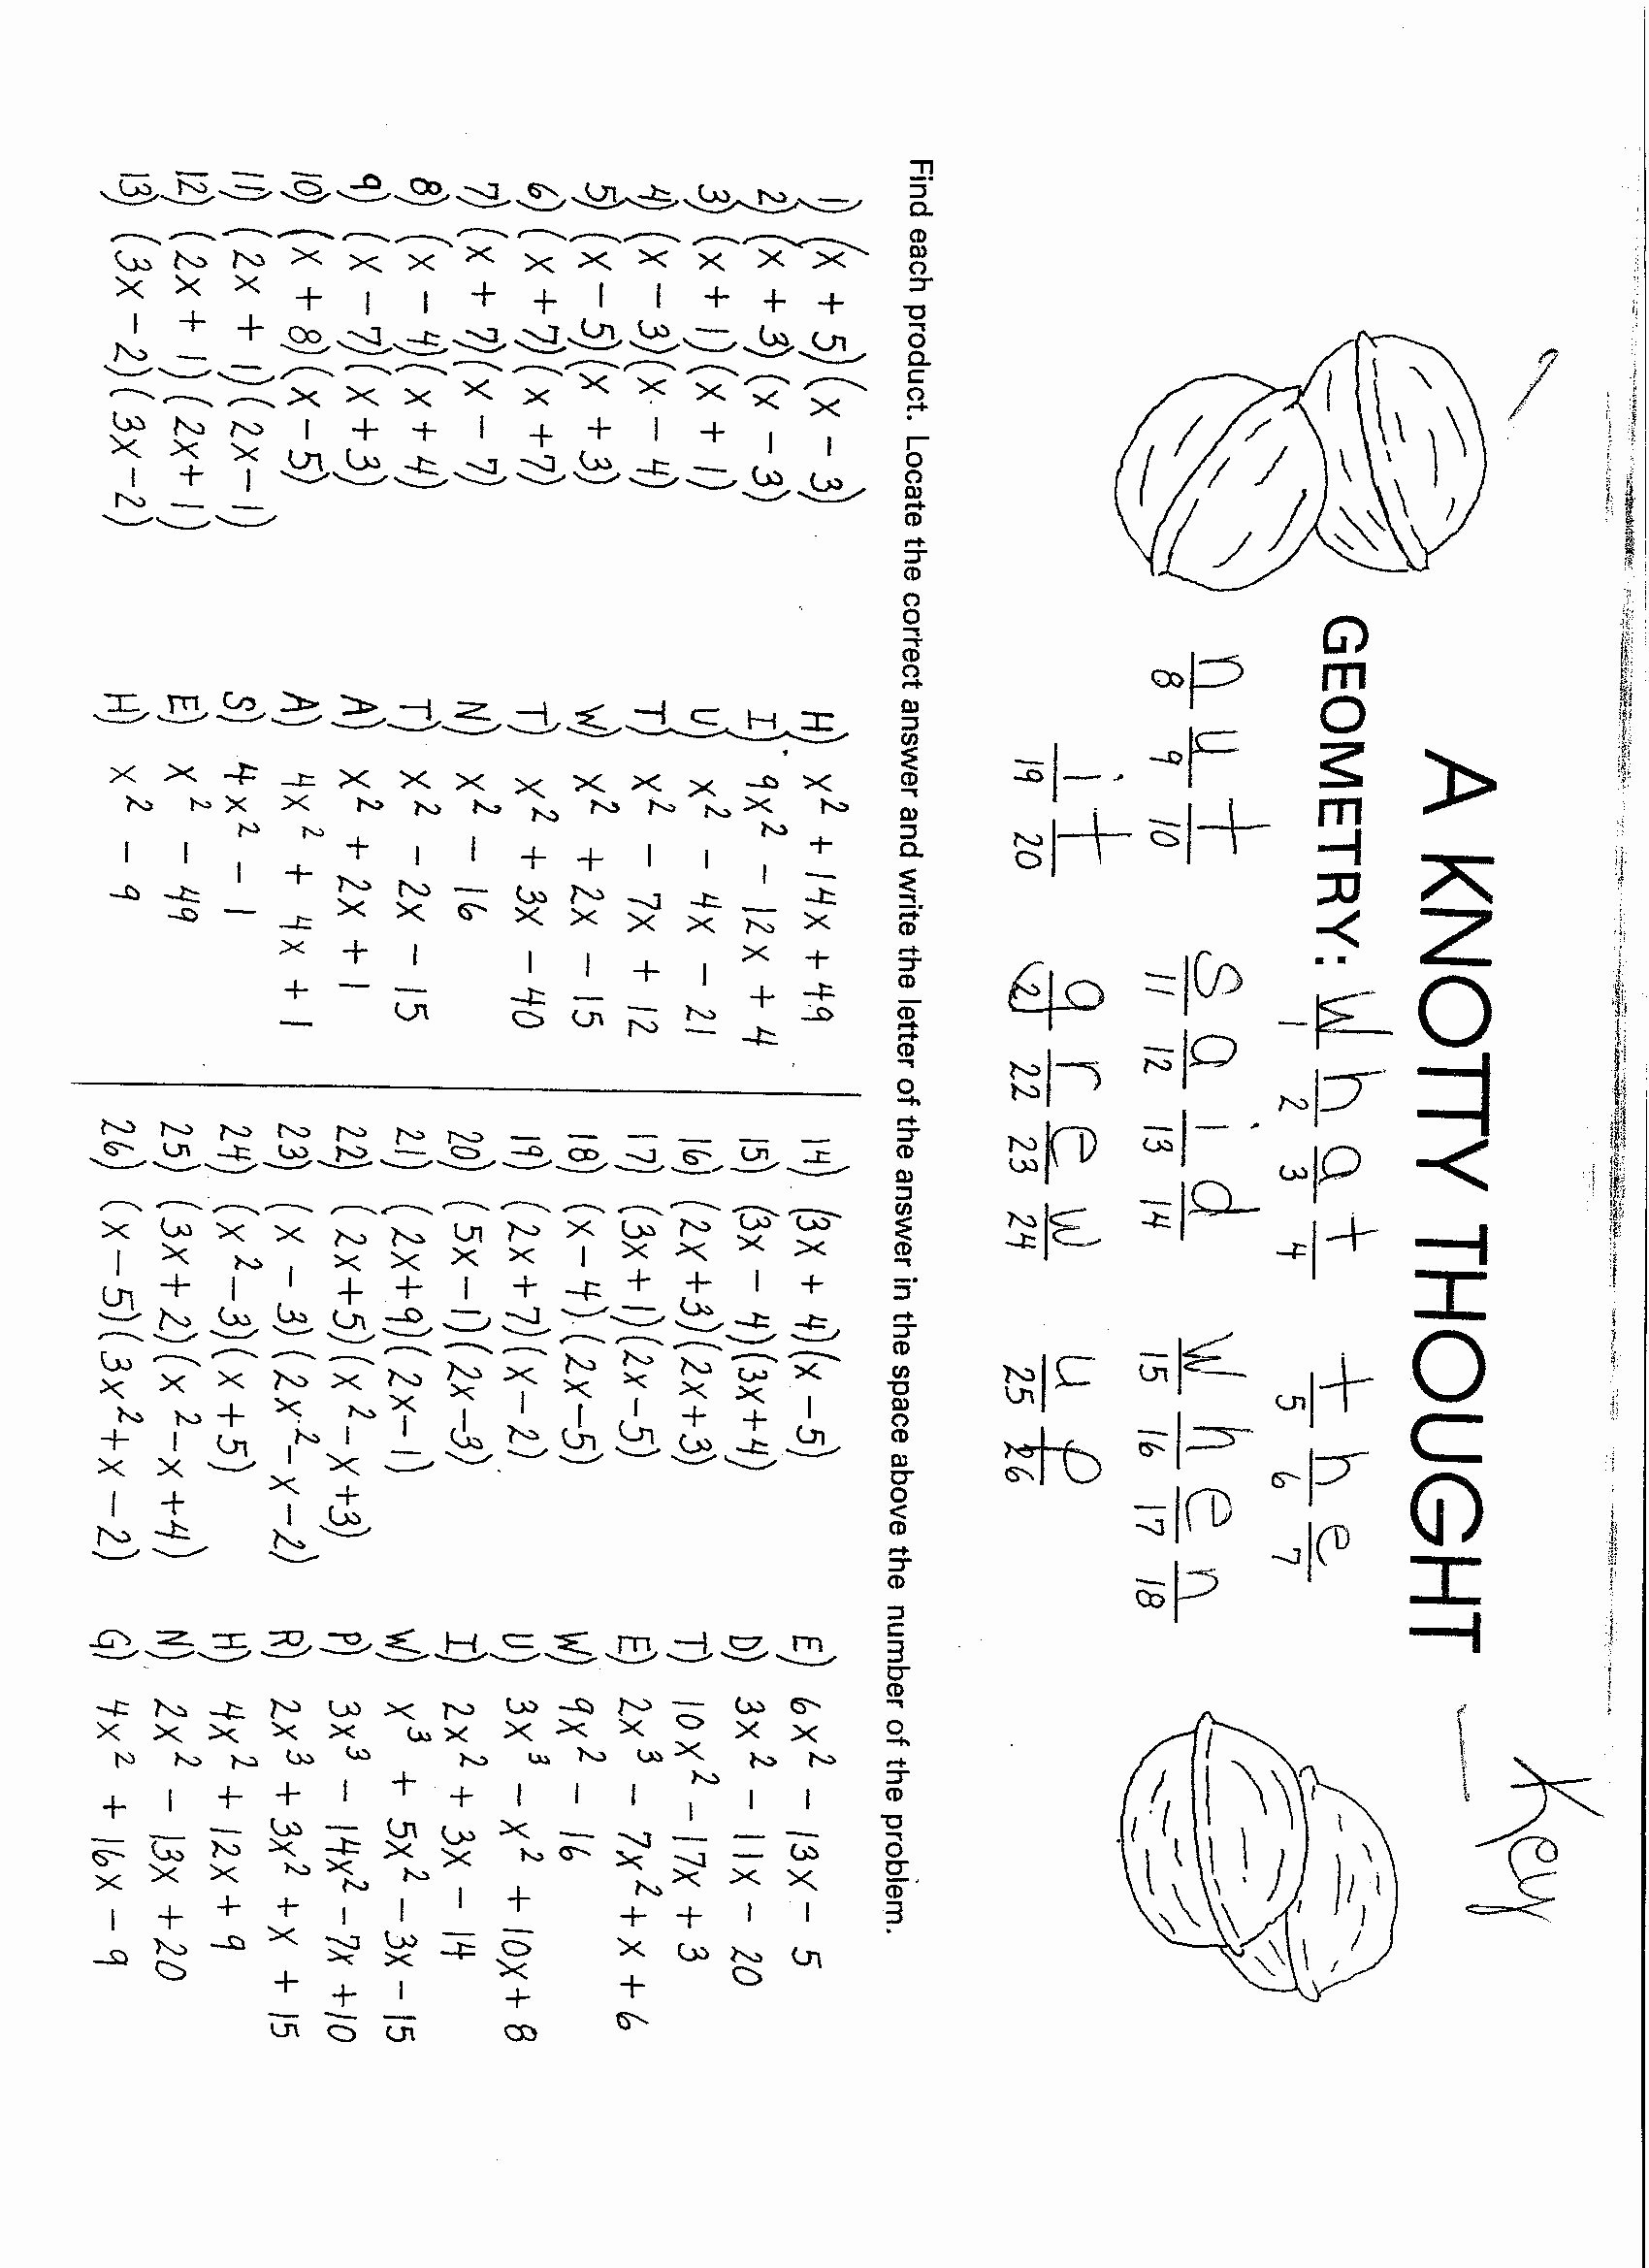 Factoring Trinomials Worksheet Answer Key Best Of Factoring by Grouping Factoring by Grouping Math is Fun